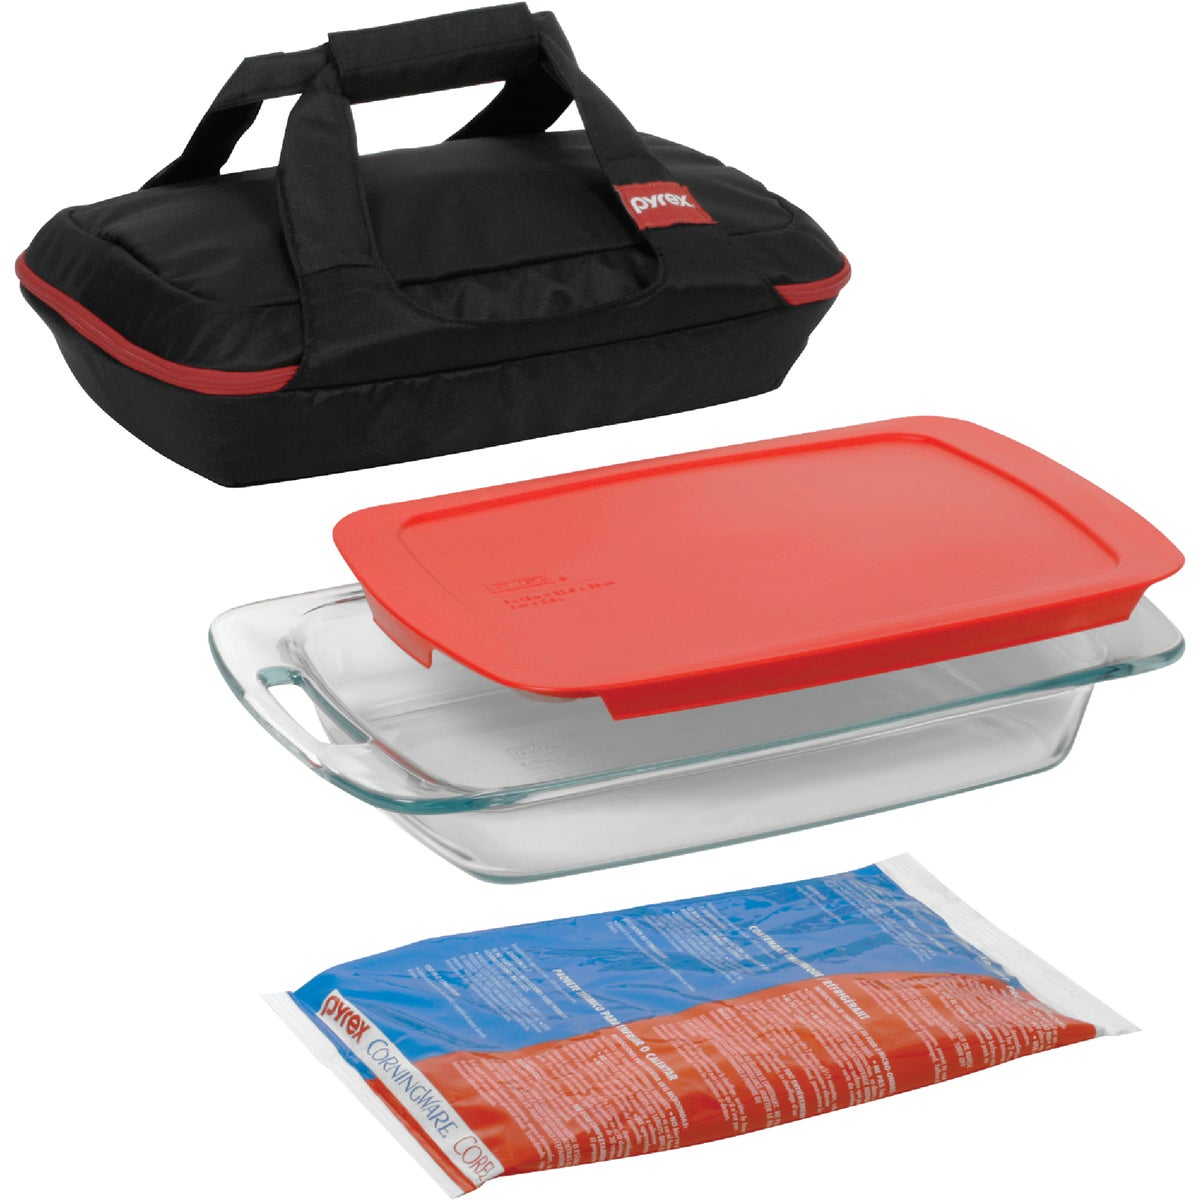 3 QUART PYREX PORTABLE - 1102266 by World Kitchen